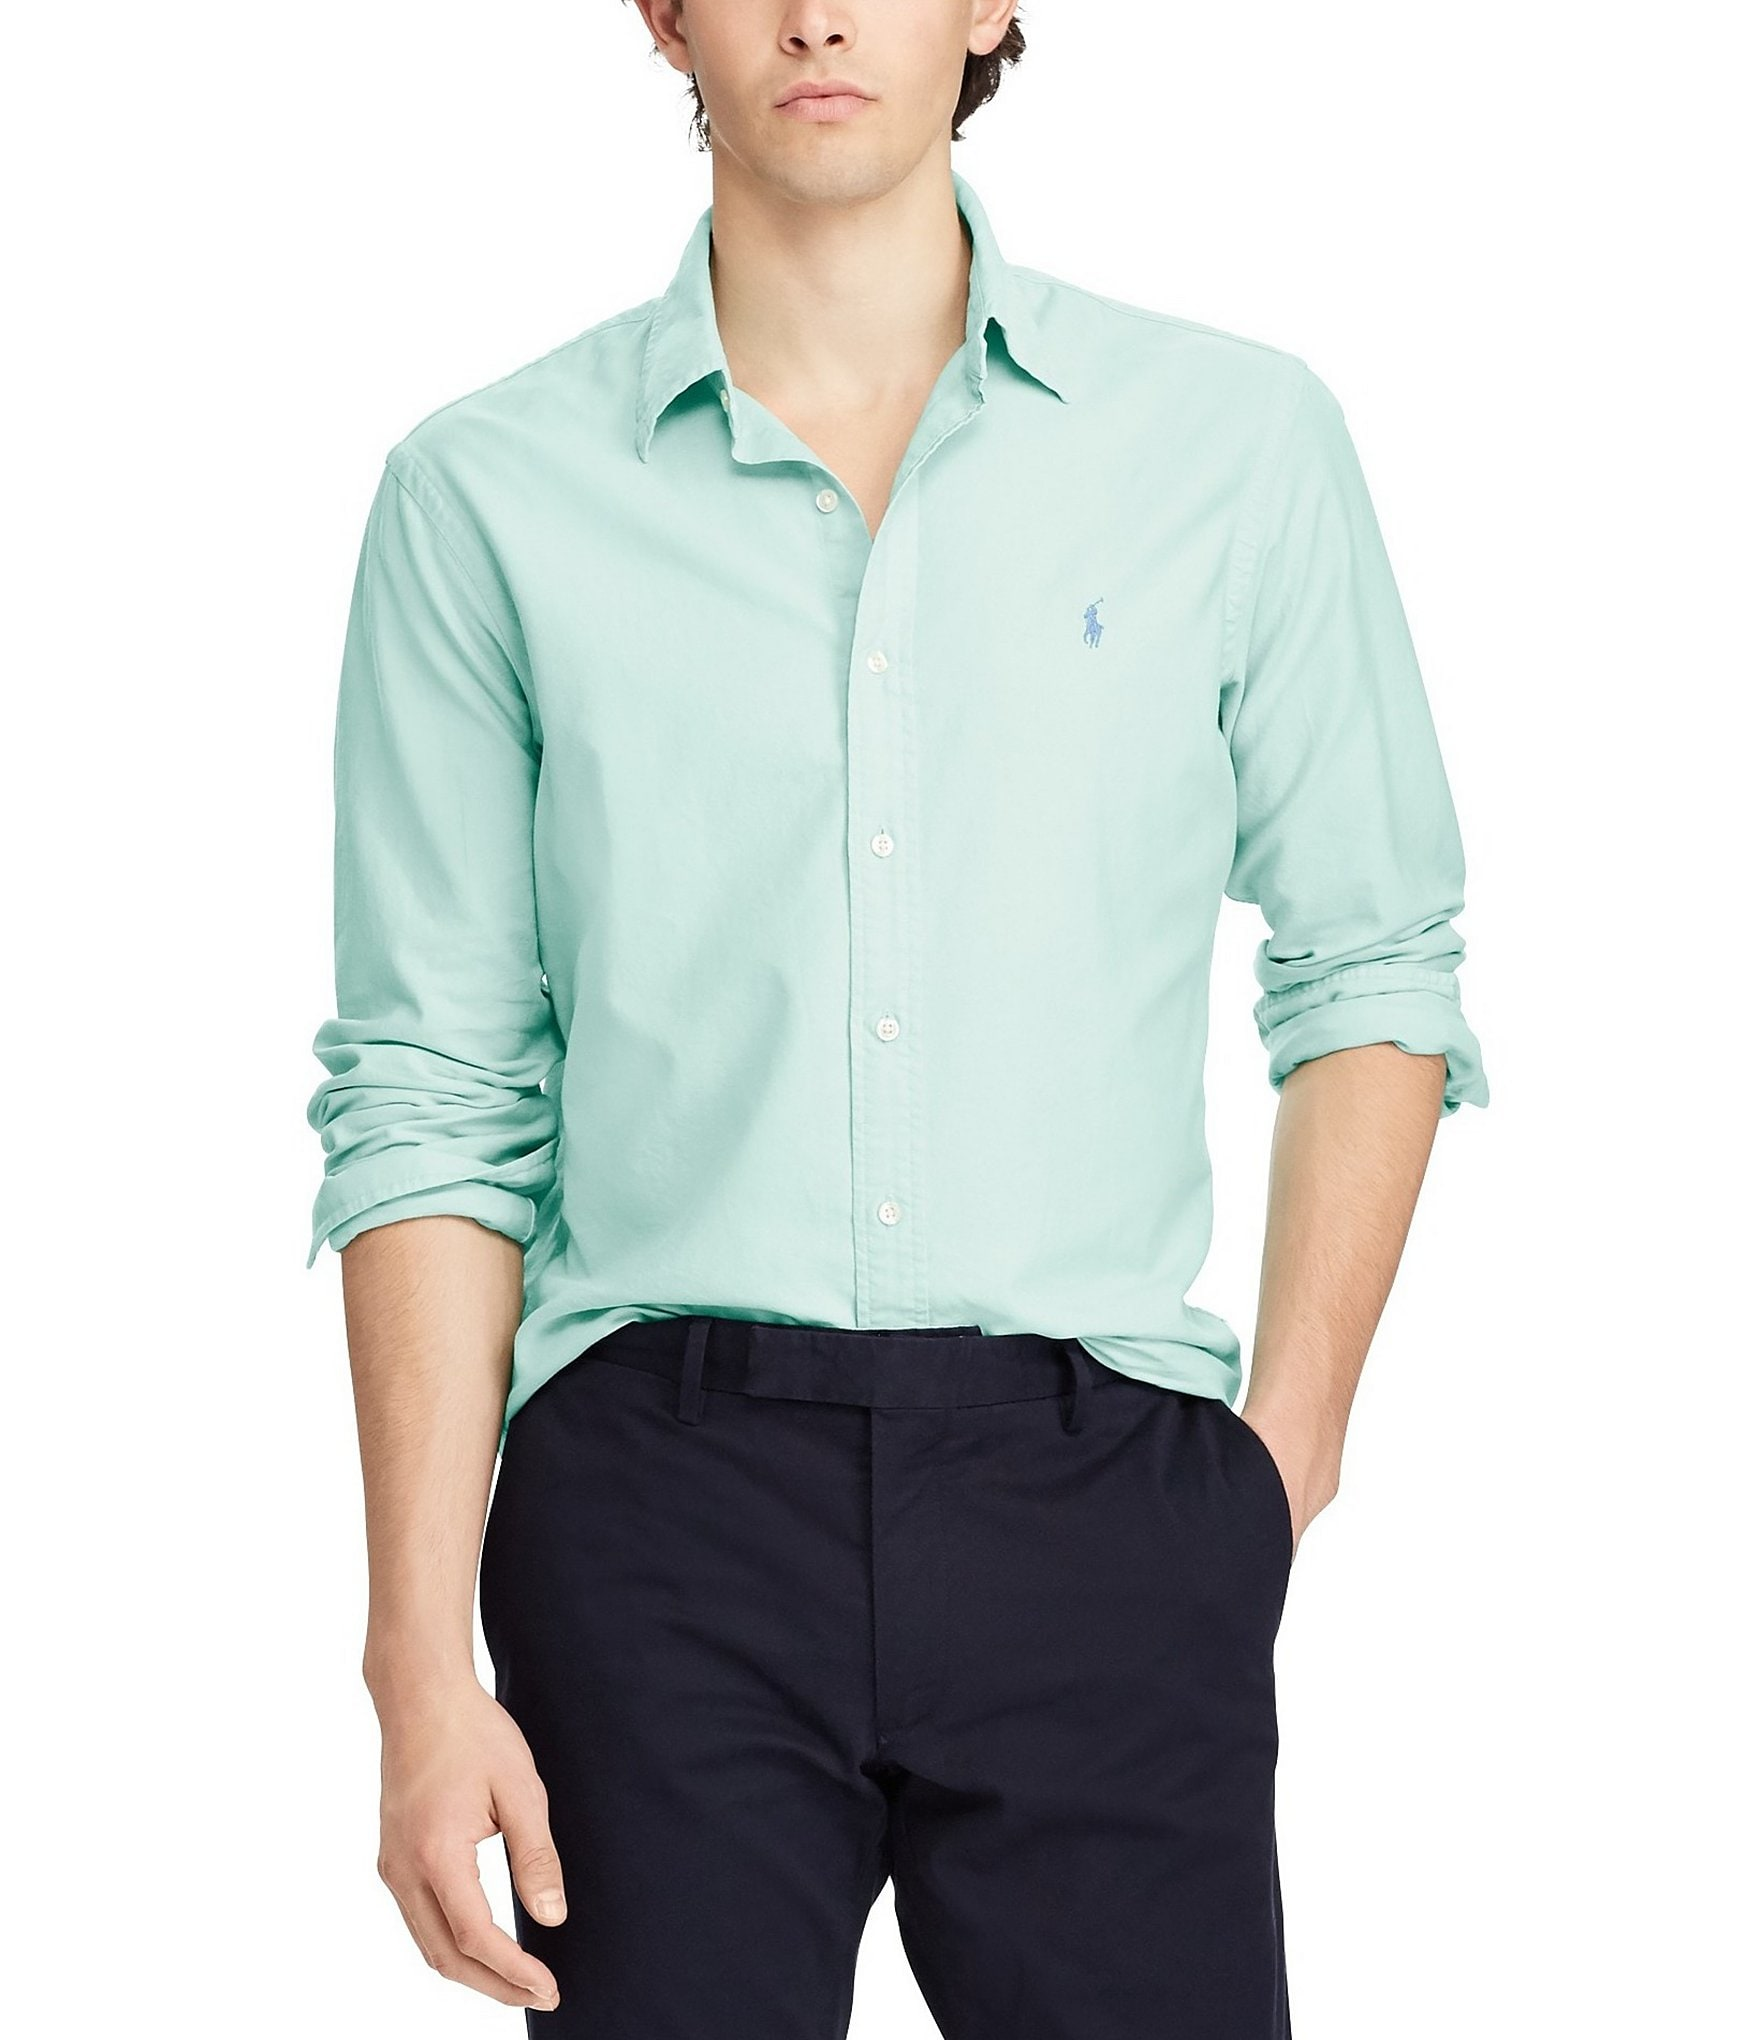 Mint Color Mens Shirt Rldm